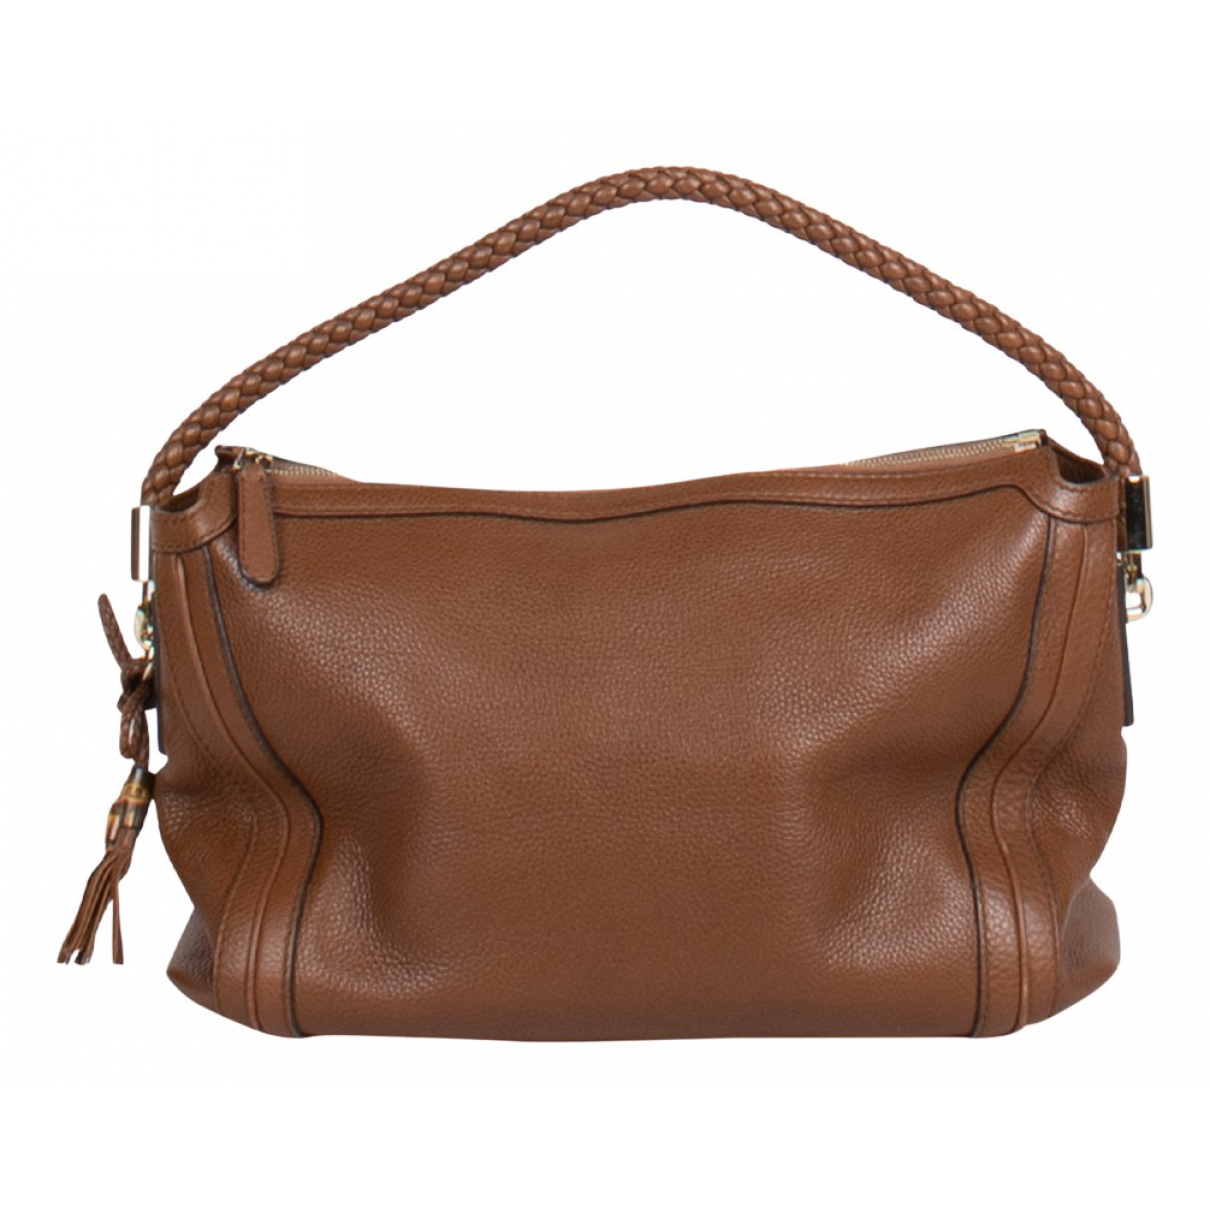 Gucci Bamboo Brown Leather handbag for Women N